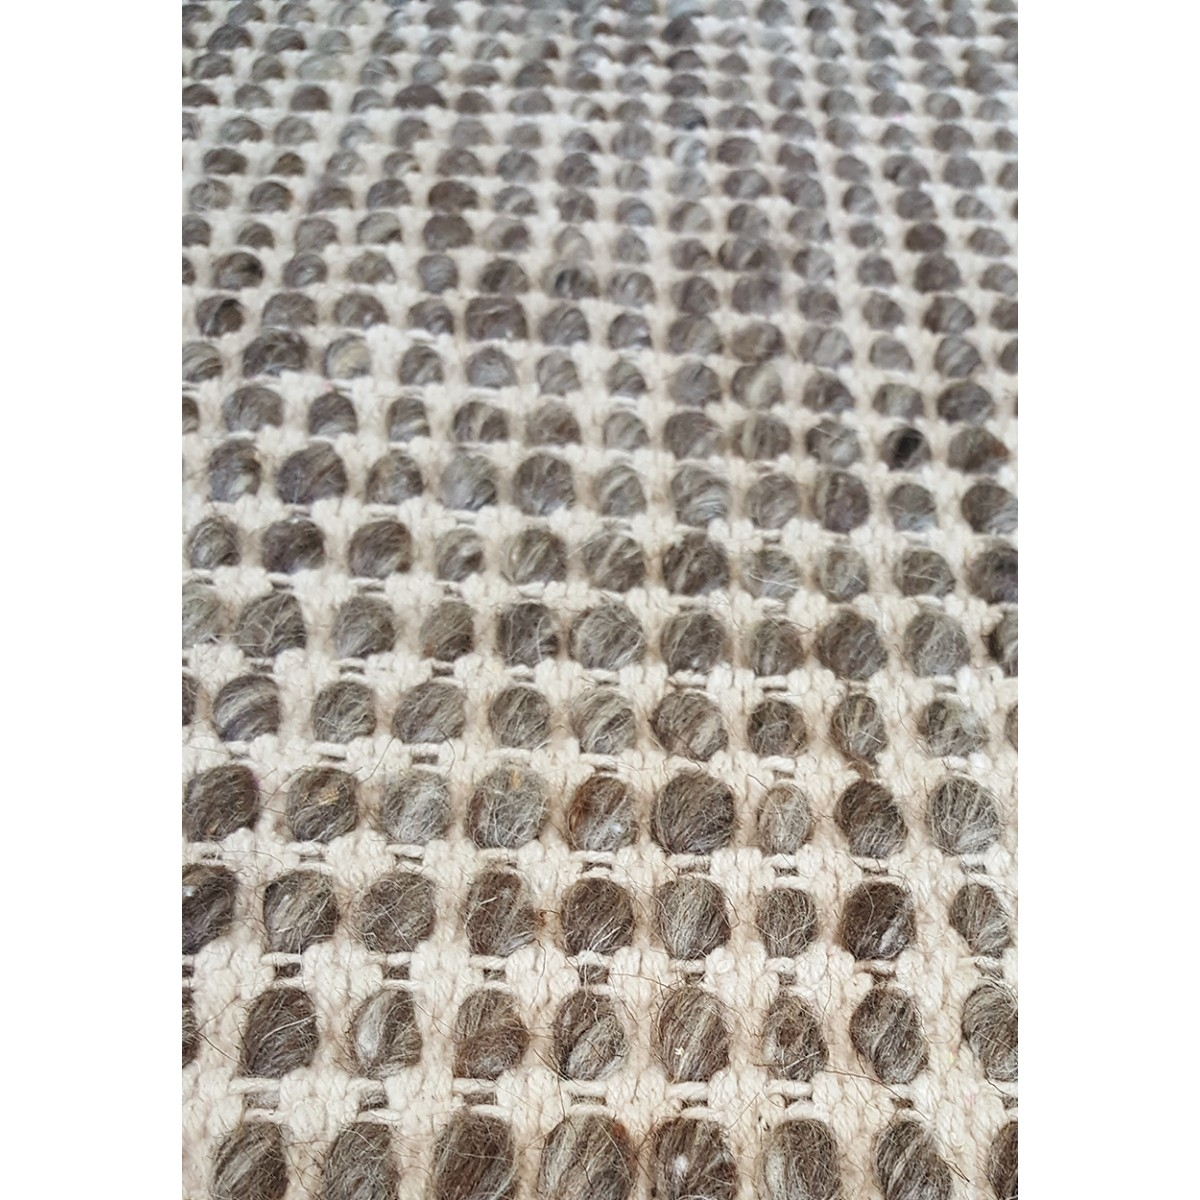 Voss Grey Brown Felted Wool Hand Knotted Rug Inside Knotted Wool Rugs (Image 13 of 15)